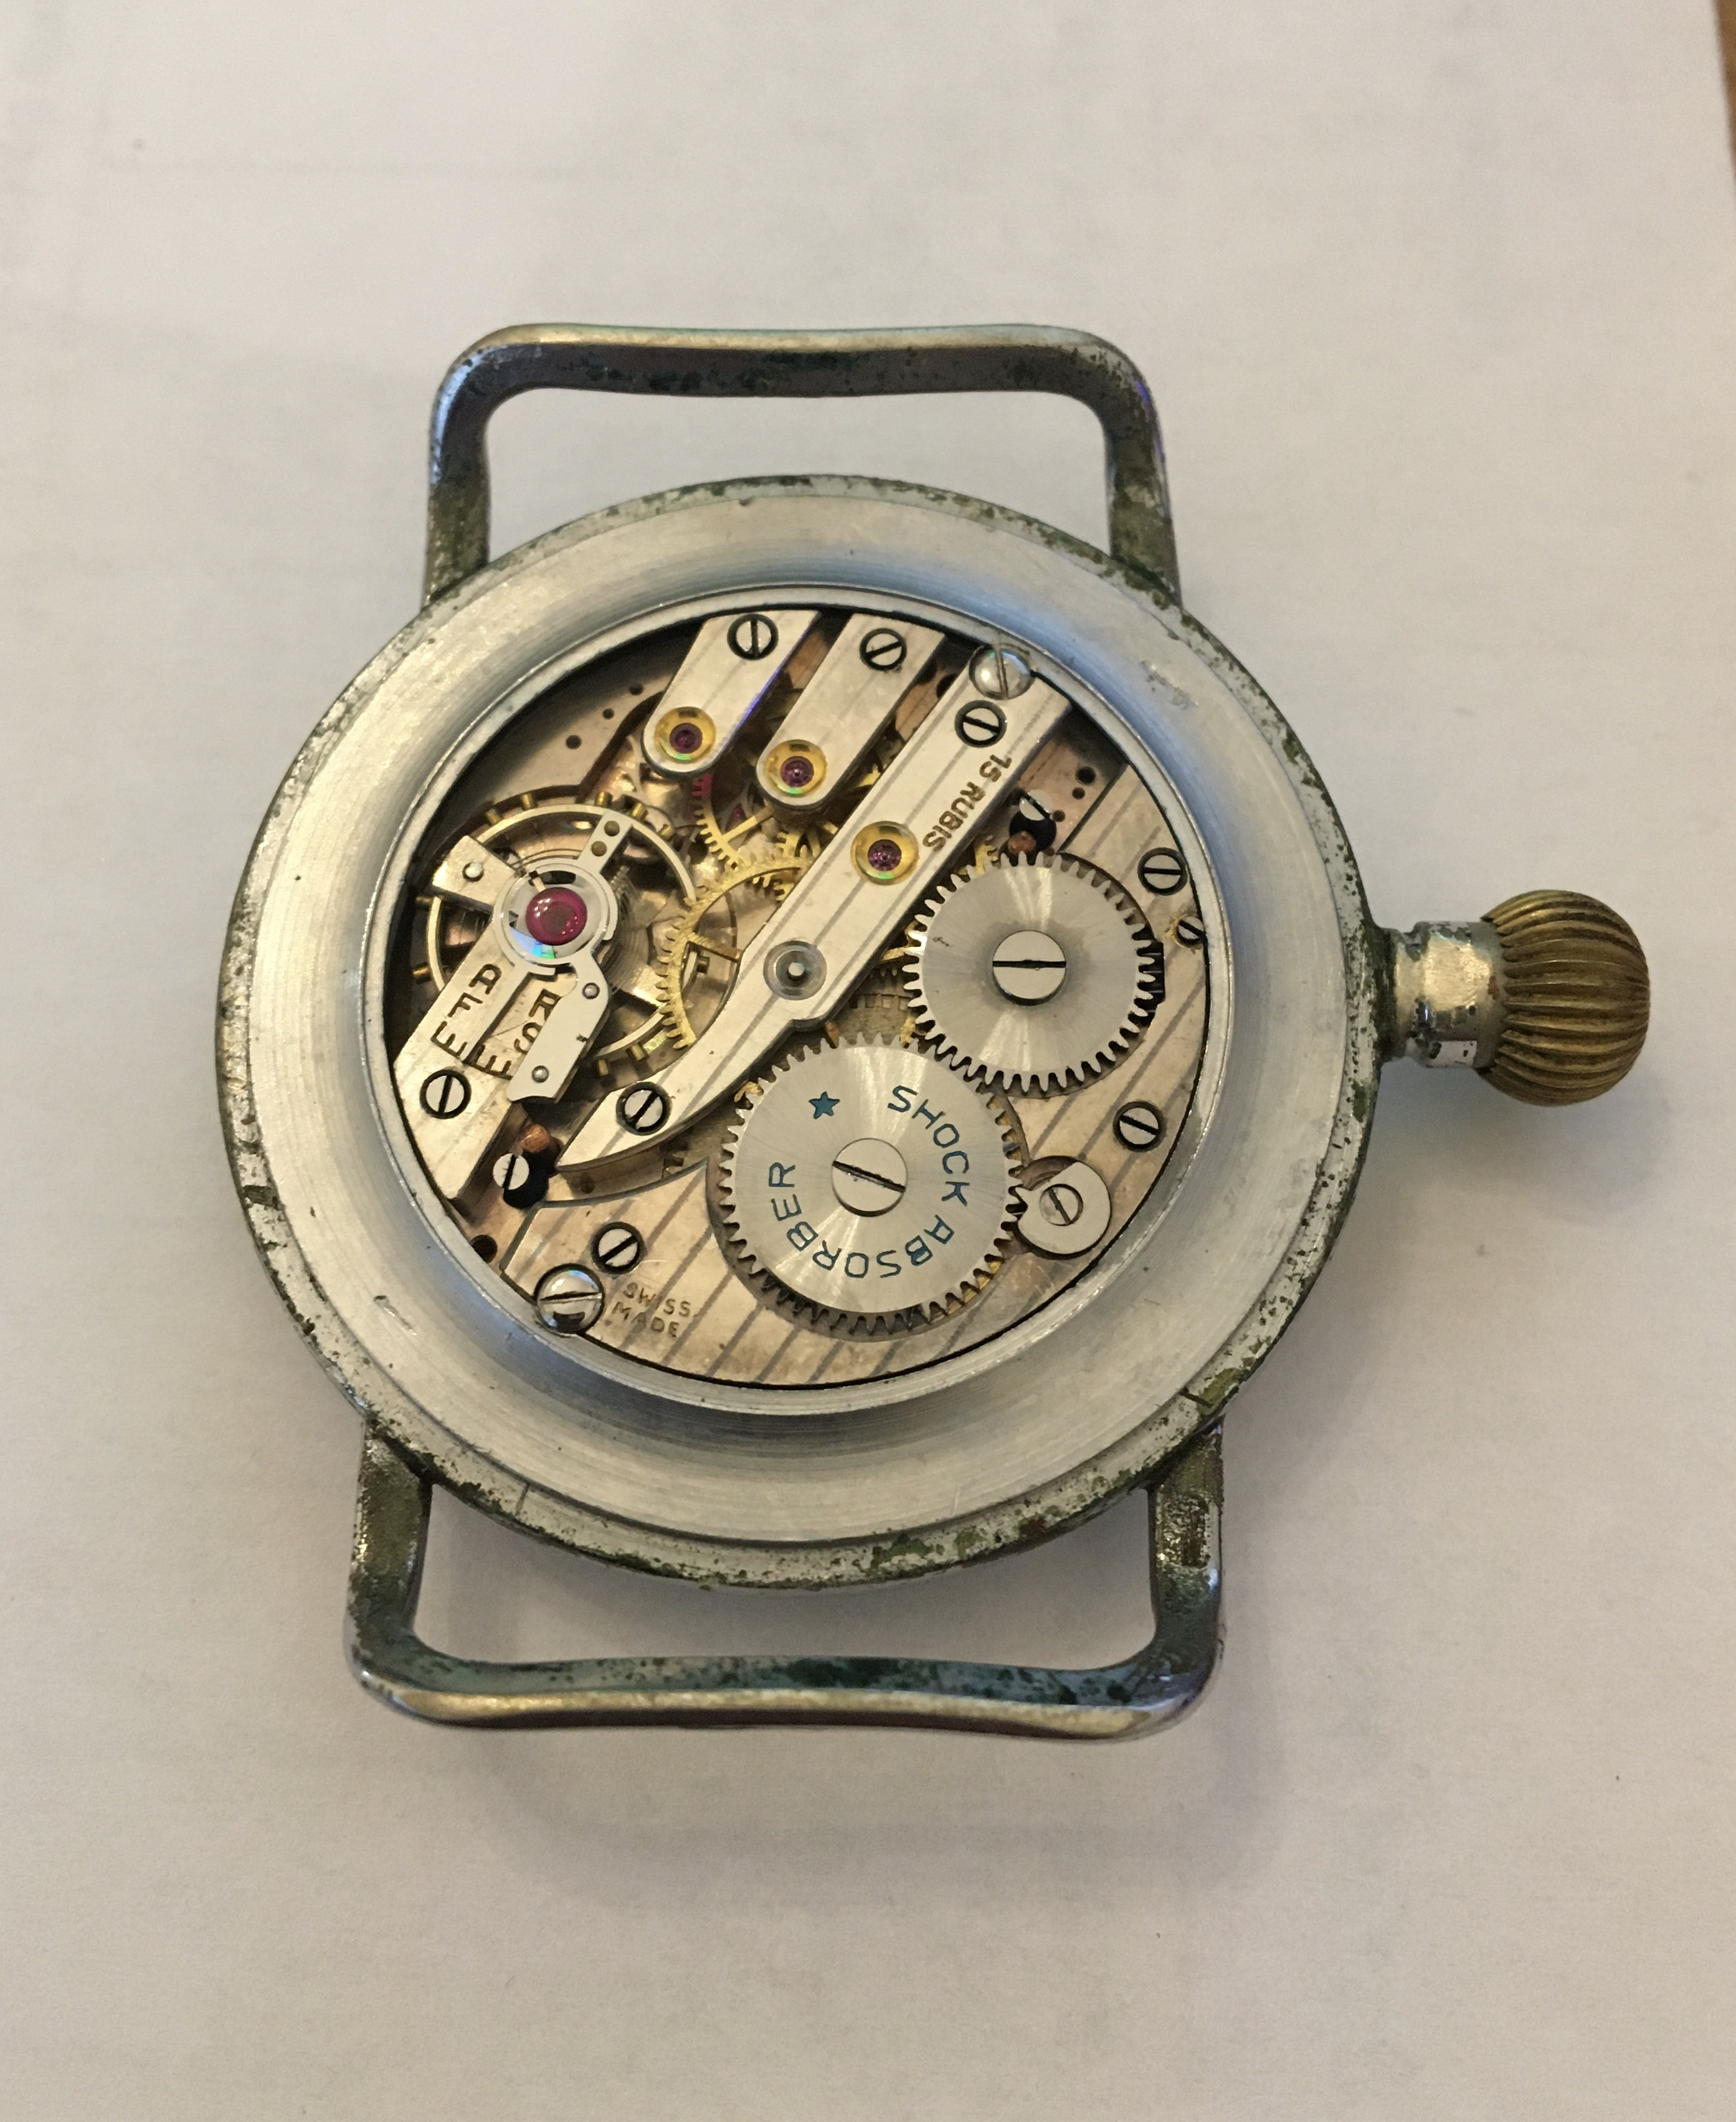 German military: An aviator's wristwatch, by Avia, 1930s-1940s, the black dial signed 'Avia - Image 3 of 4